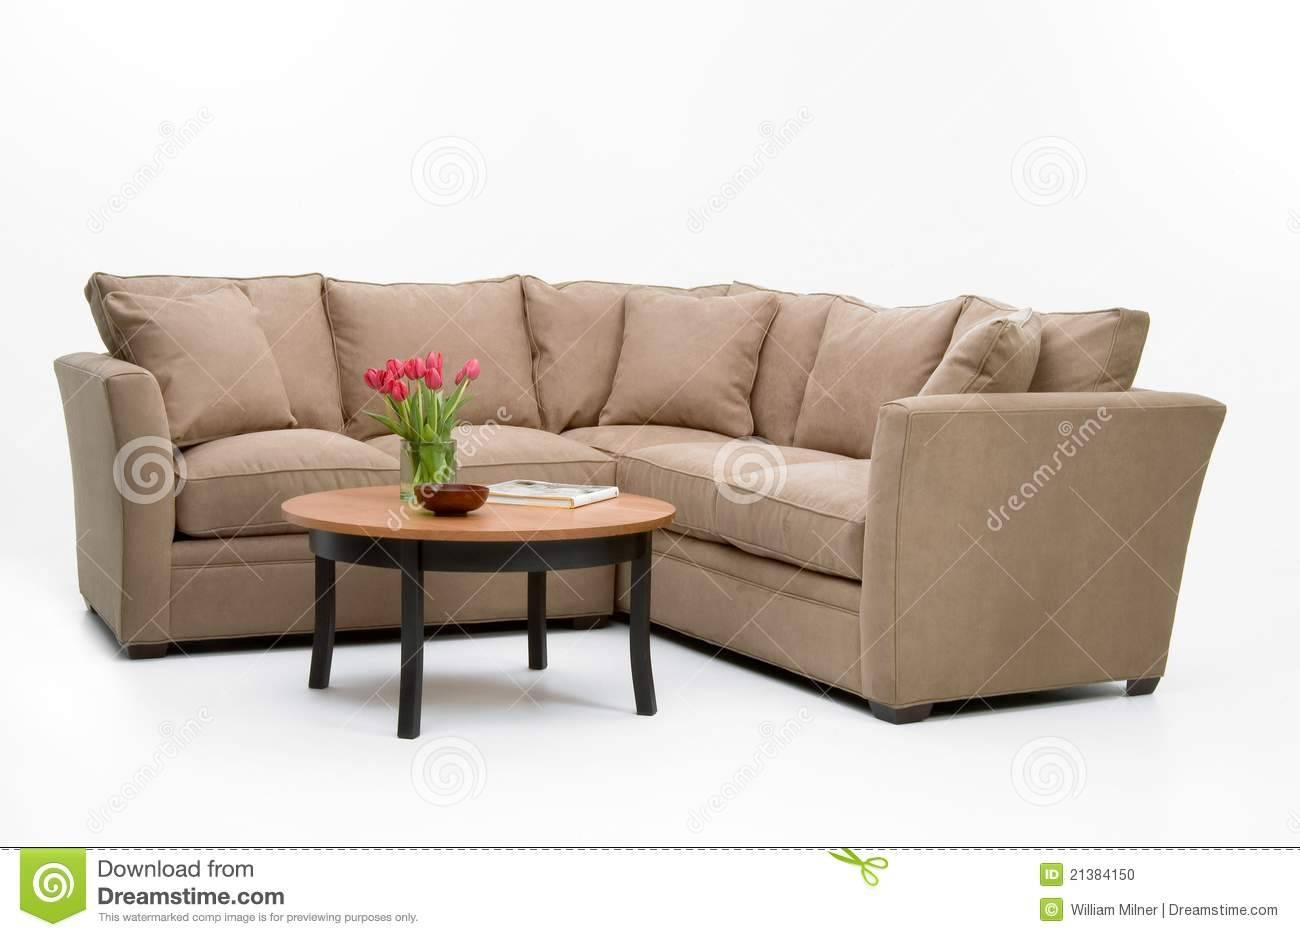 Fabric Sofa Set & Table Stock Photo - Image: 21384150 throughout Sofa Table Chairs (Image 15 of 30)